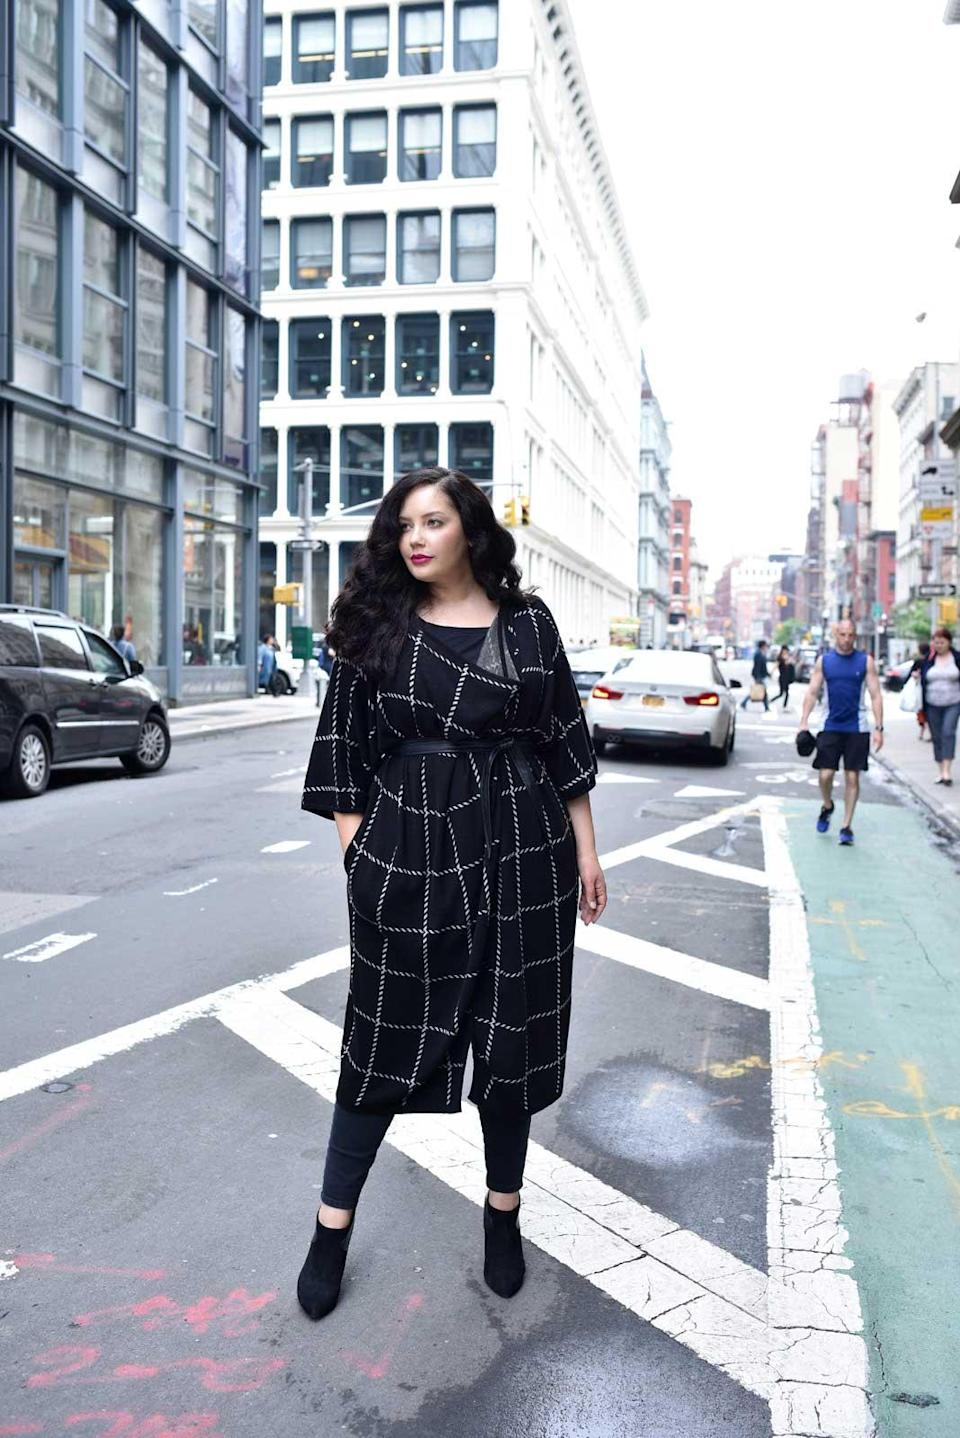 Tanesha Awasthi of Girl With Curves in clothing from her new collection with Lane Bryant. (Photo: Lane Bryant)